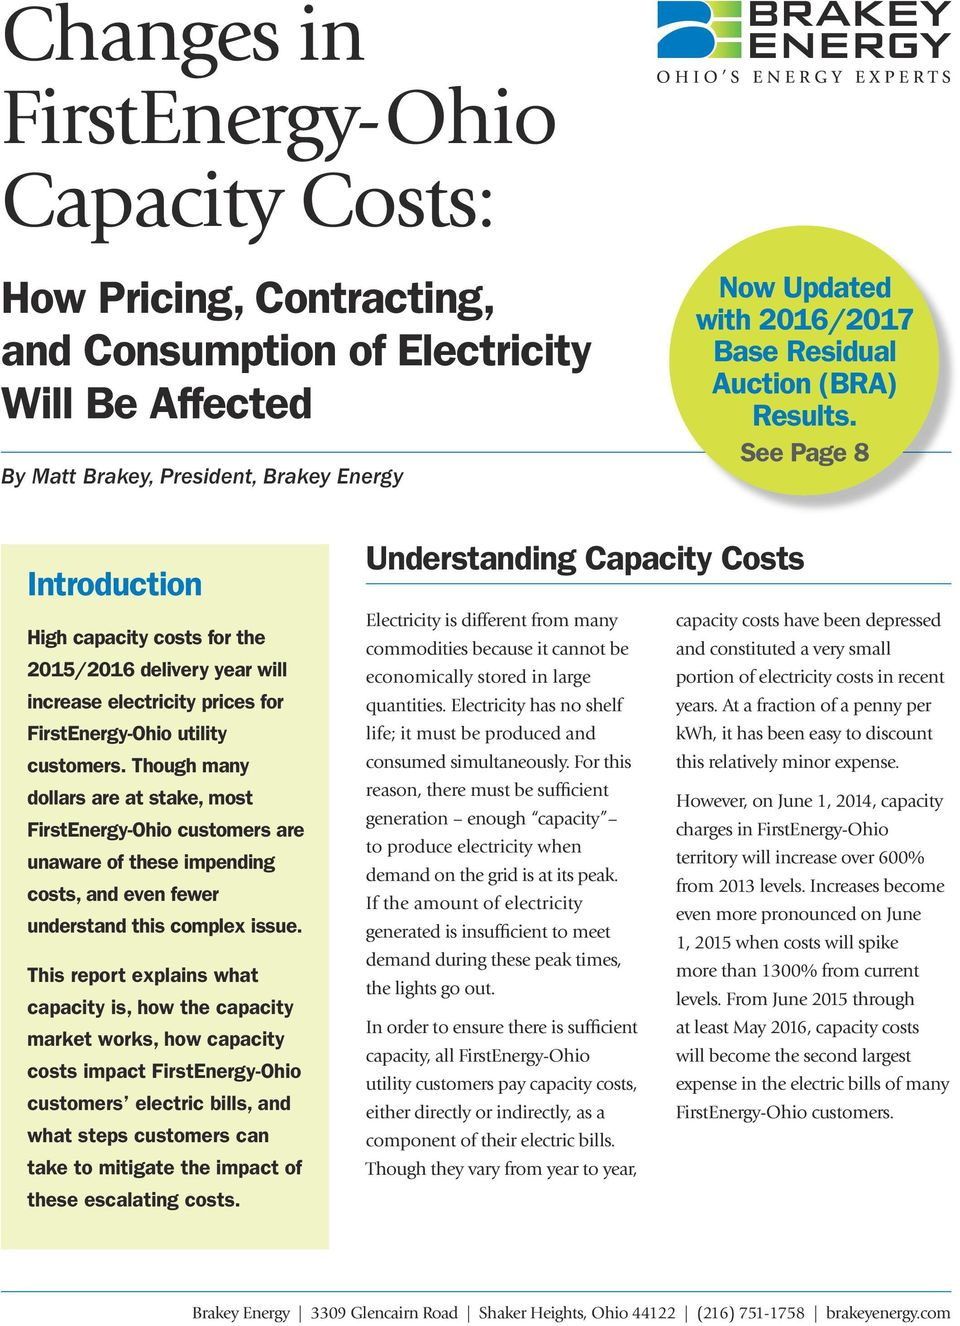 Though many dollars are at stake, most FirstEnergy-Ohio customers are unaware of these impending costs, and even fewer understand this complex issue.